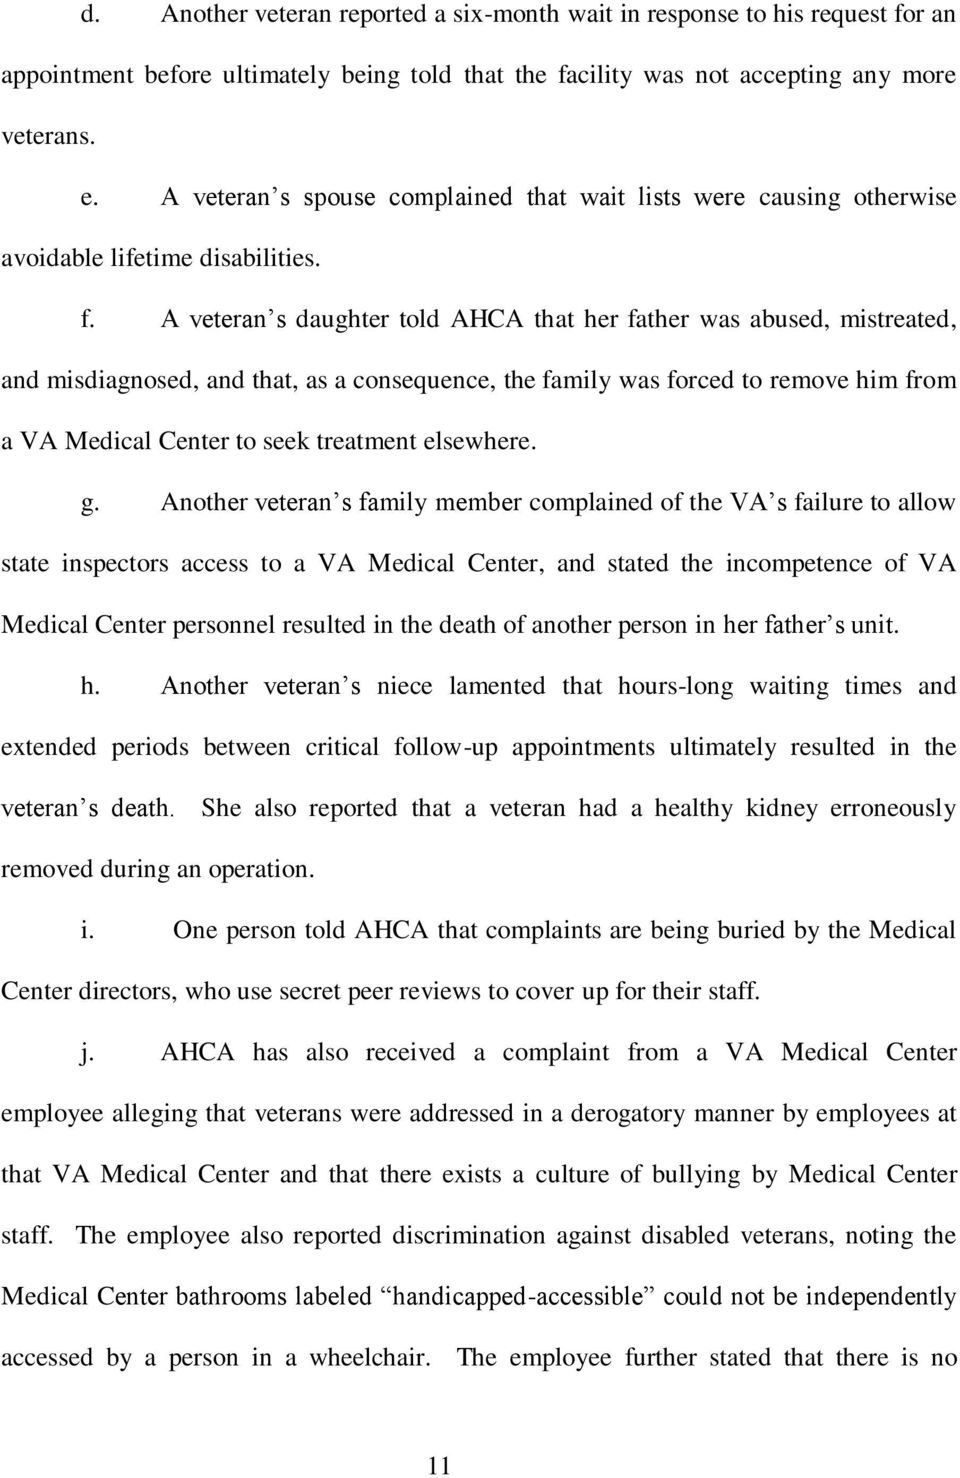 A veteran s daughter told AHCA that her father was abused, mistreated, and misdiagnosed, and that, as a consequence, the family was forced to remove him from a VA Medical Center to seek treatment